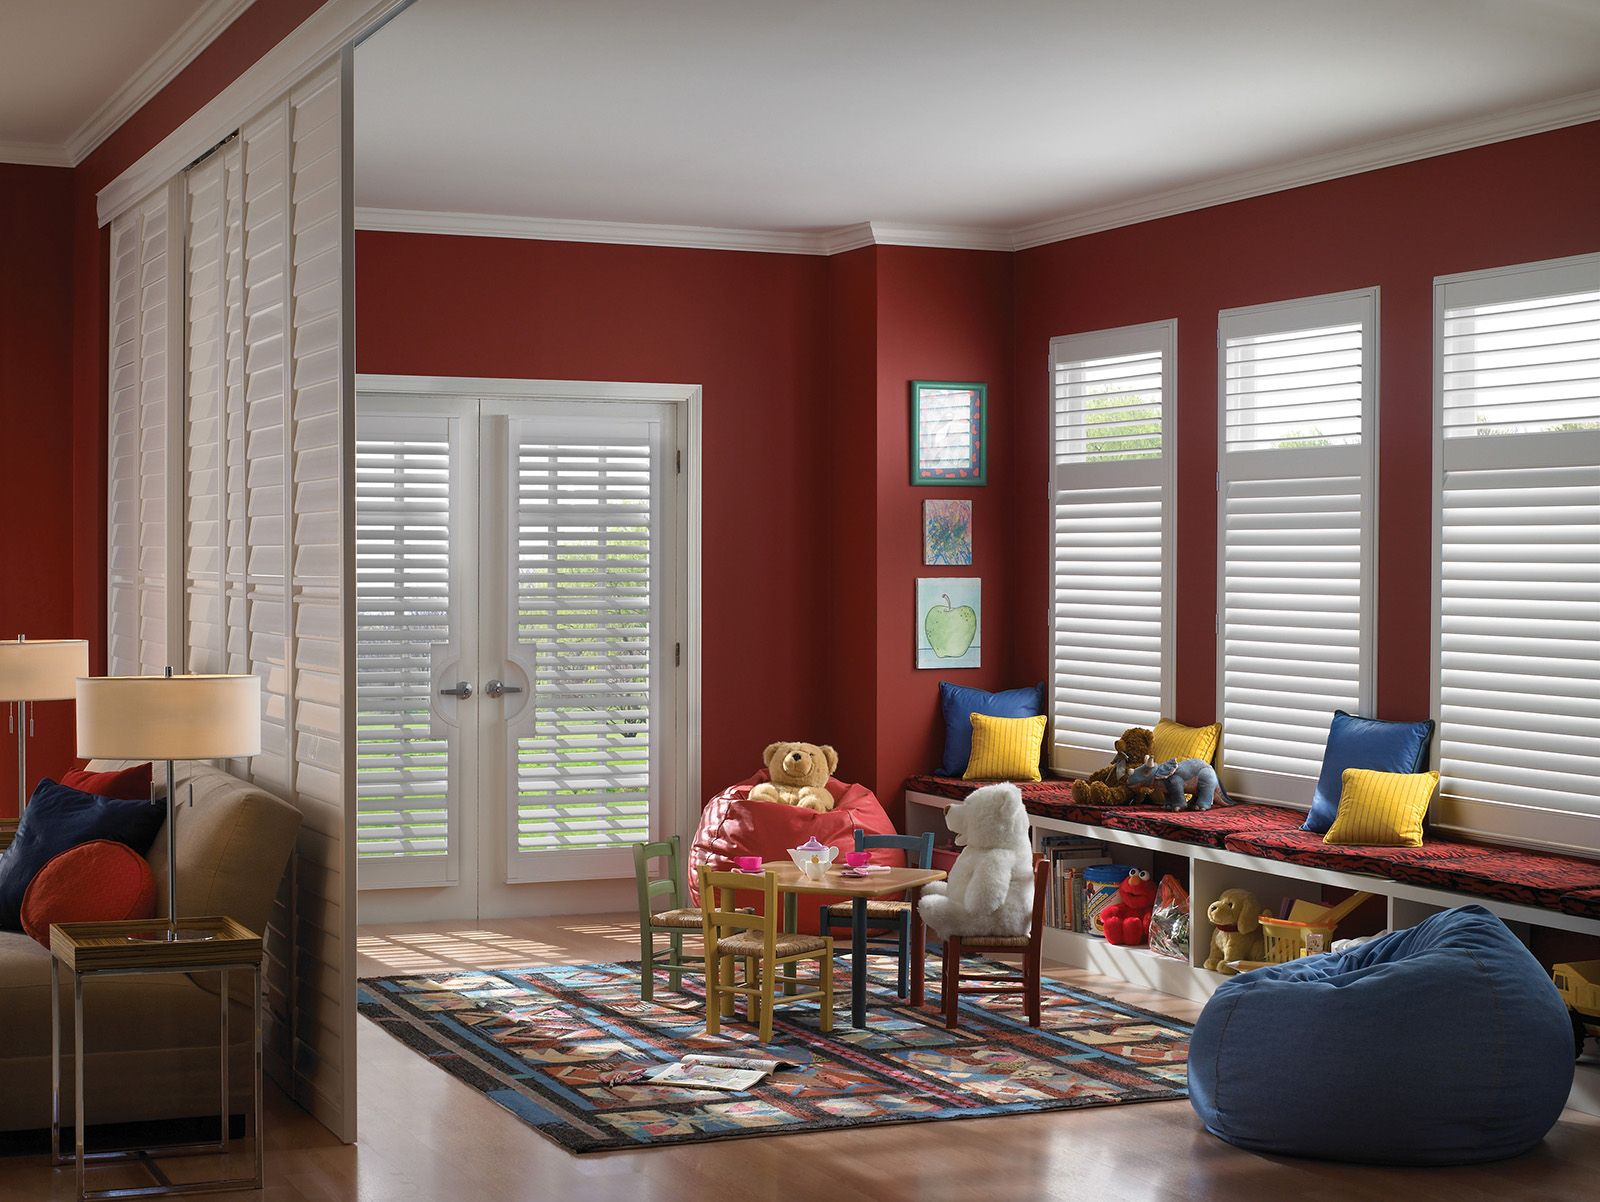 Cotton • 3½ inch louvers on Room Divider/By-Pass Track System with Decorative Valance • 2½ inch louvers on French Door Cut-out and windows • Divider Rail • Clearview® hidden rear tilt